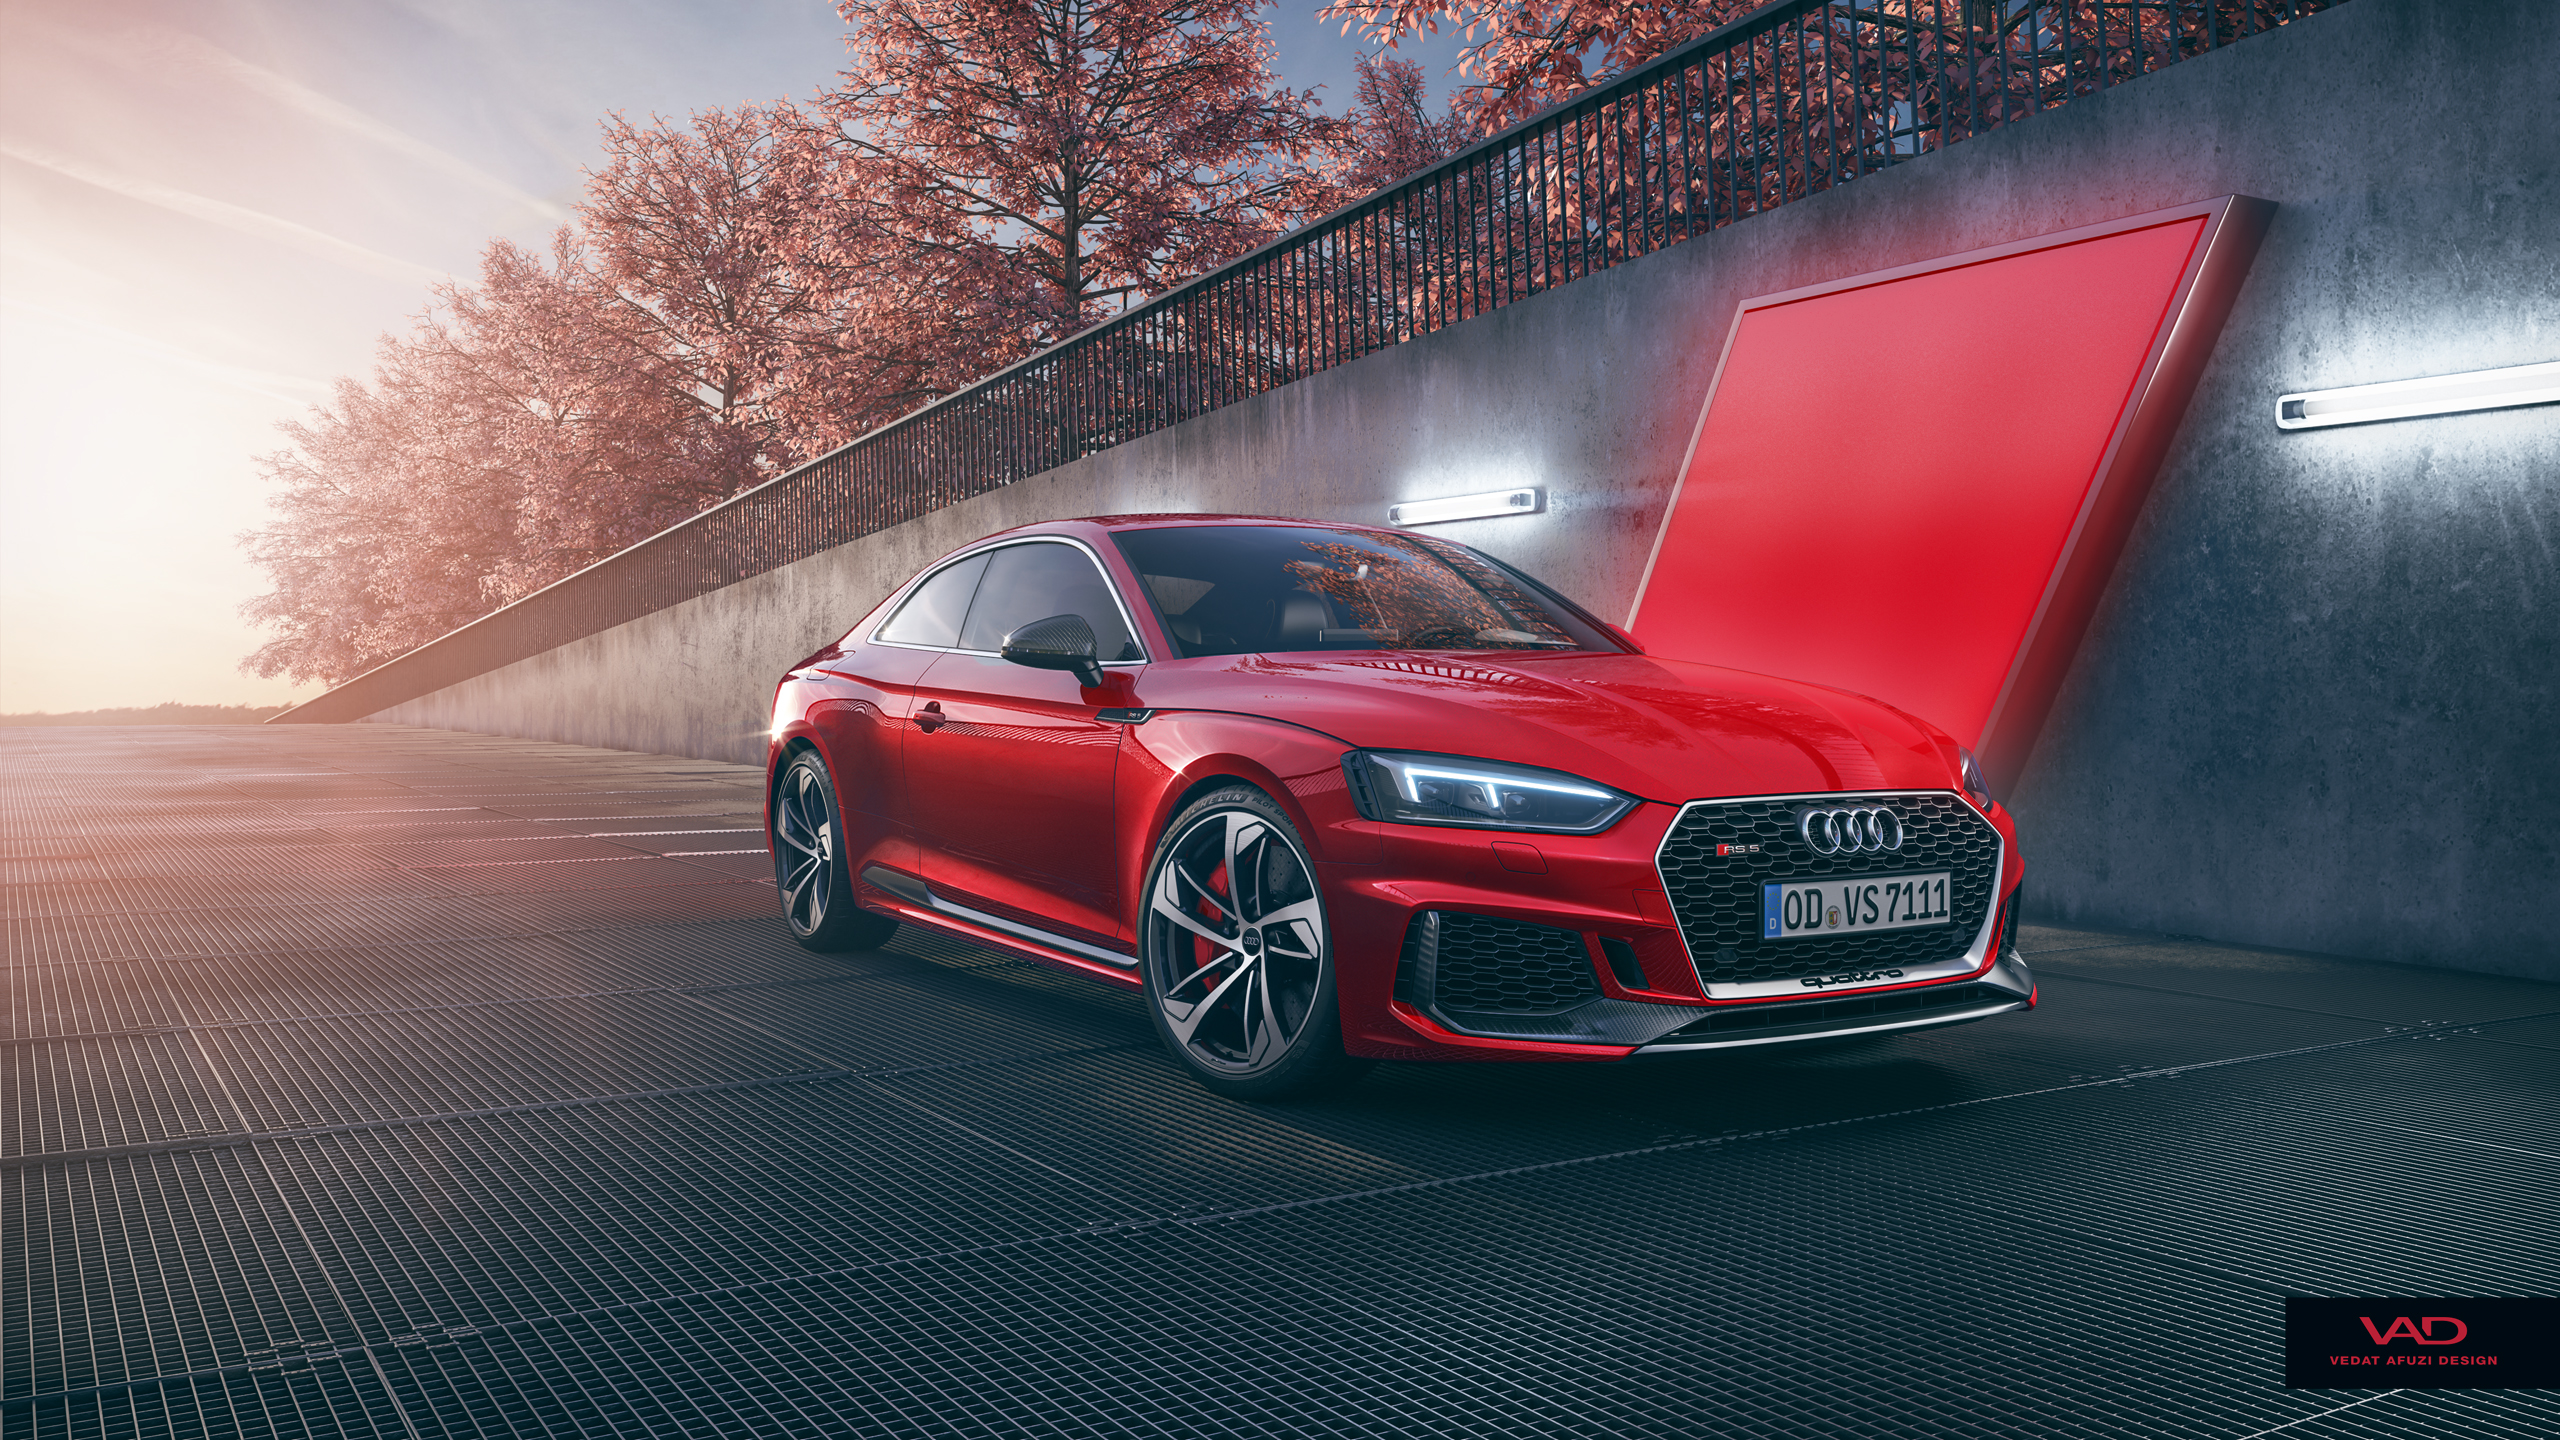 Audi RS5 Coupe CGI Wallpaper | HD Car Wallpapers | ID #8400